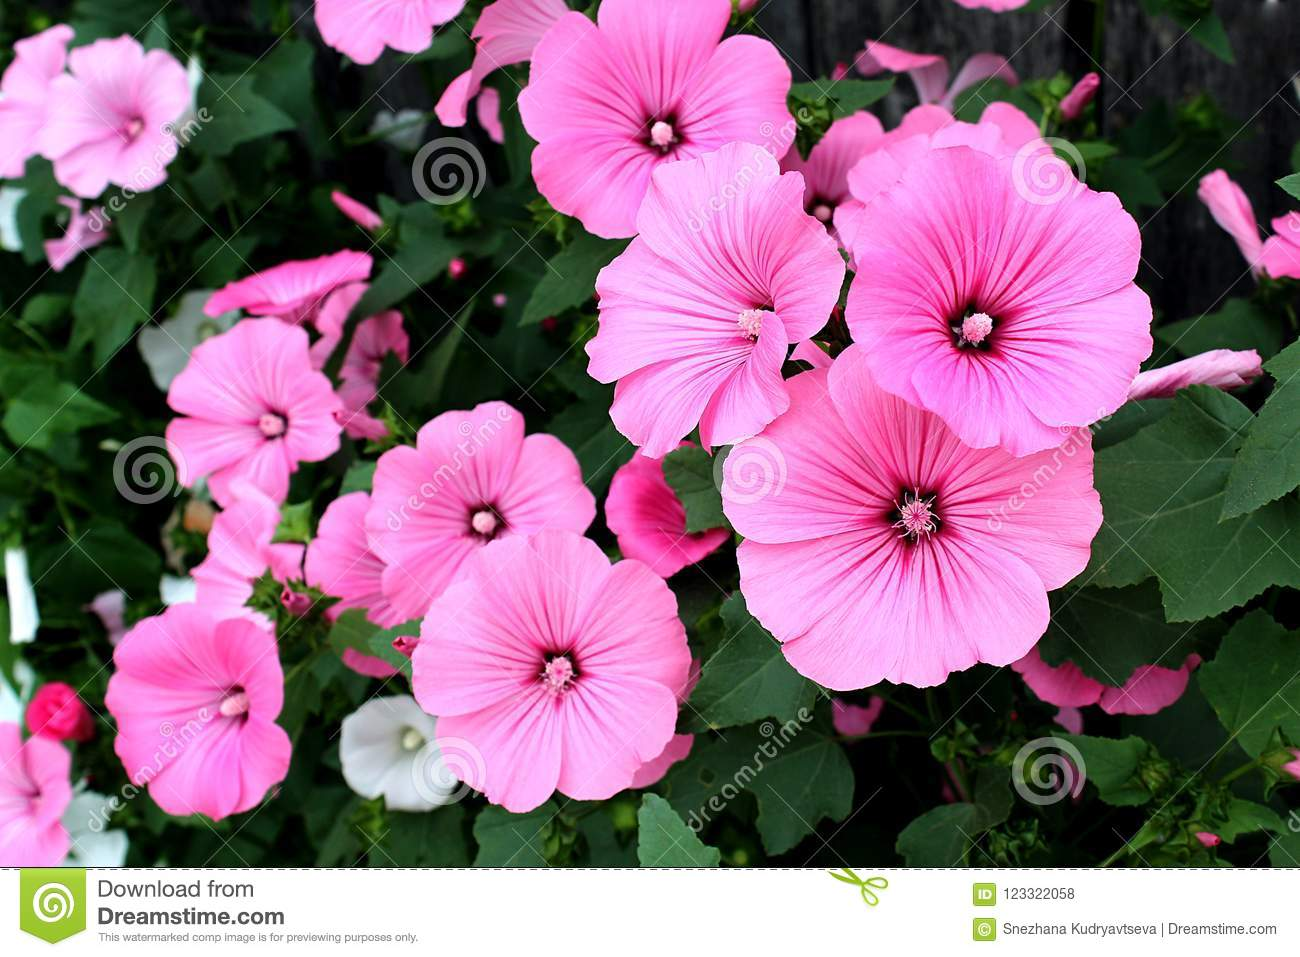 Pink flowers under the name of the lavaera blossomed on the download pink flowers under the name of the lavaera blossomed on the flowerbed stock photo mightylinksfo